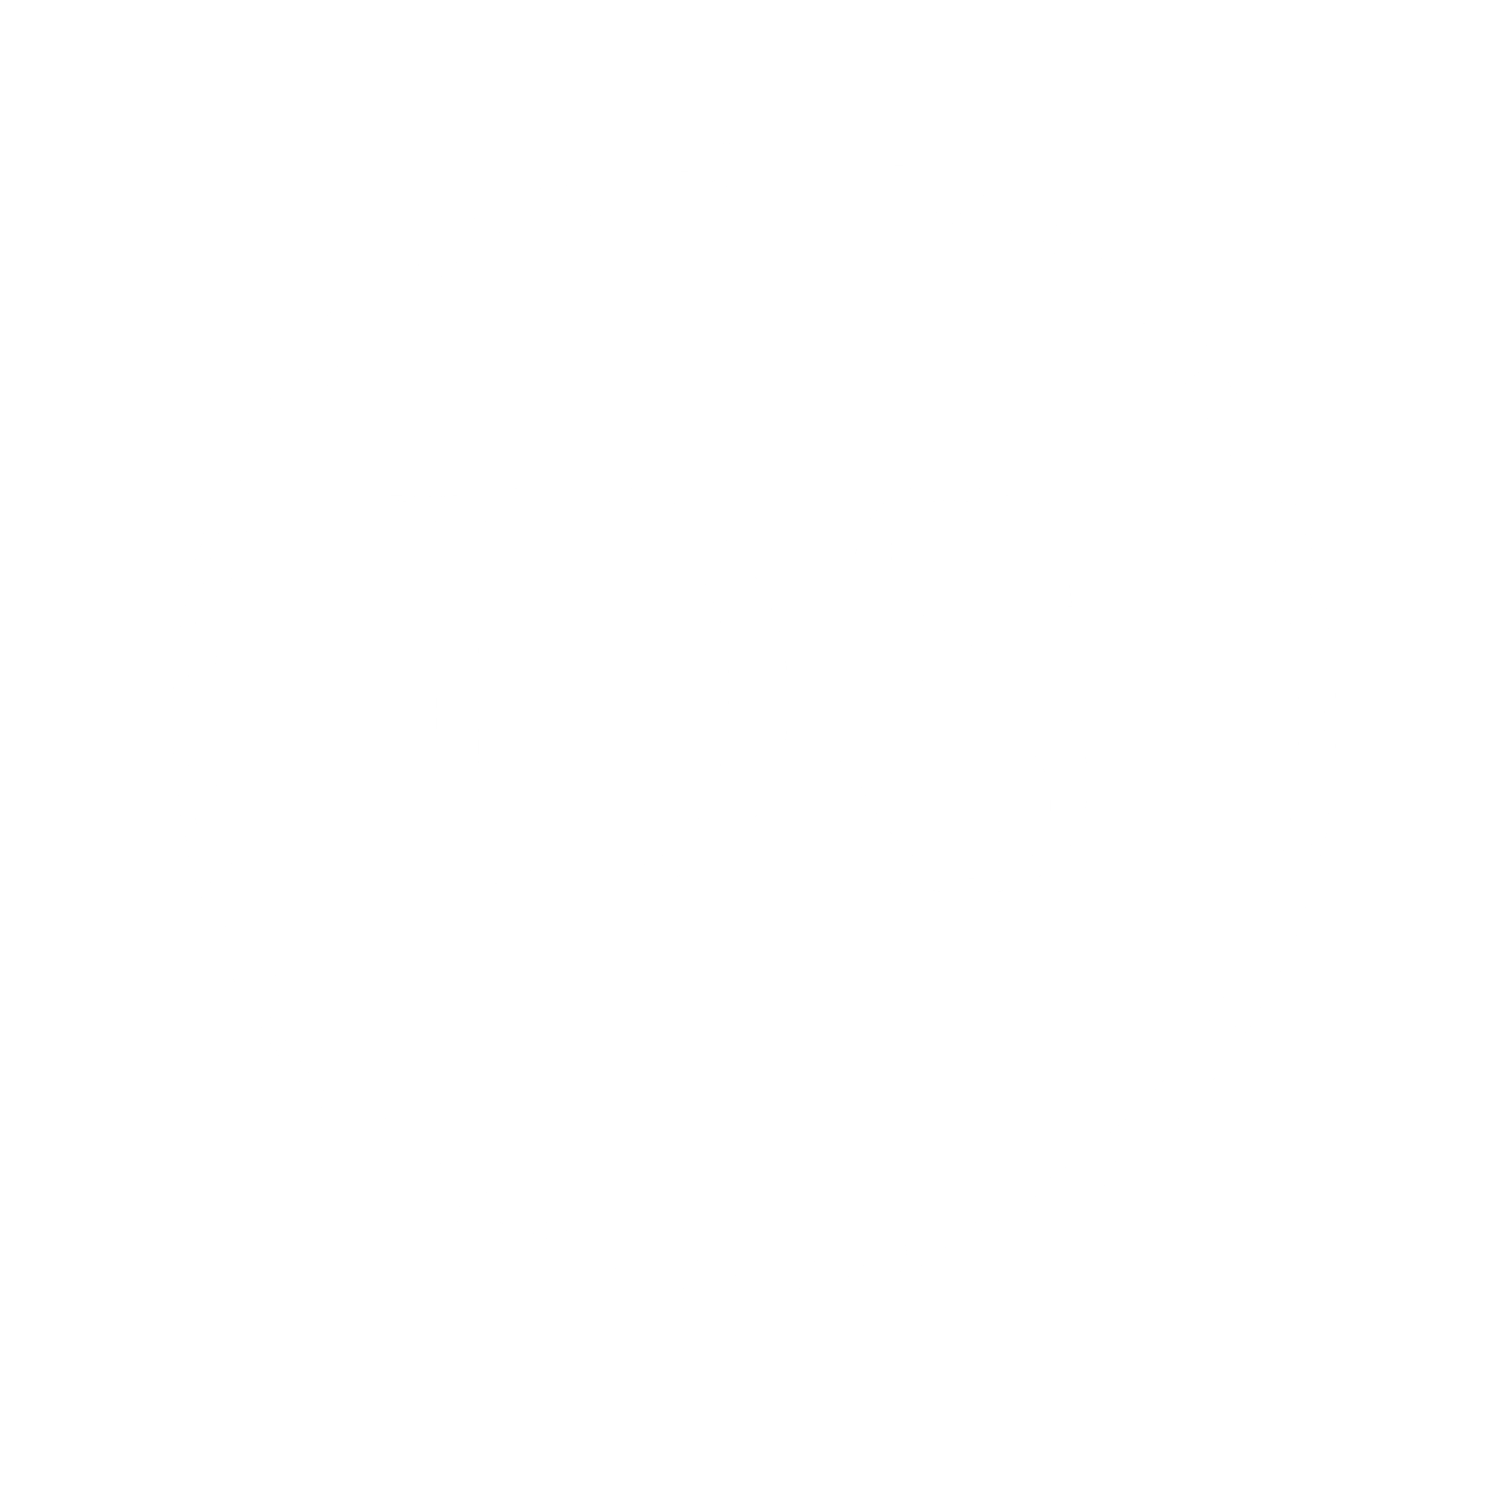 Dave Siccardi Photographer